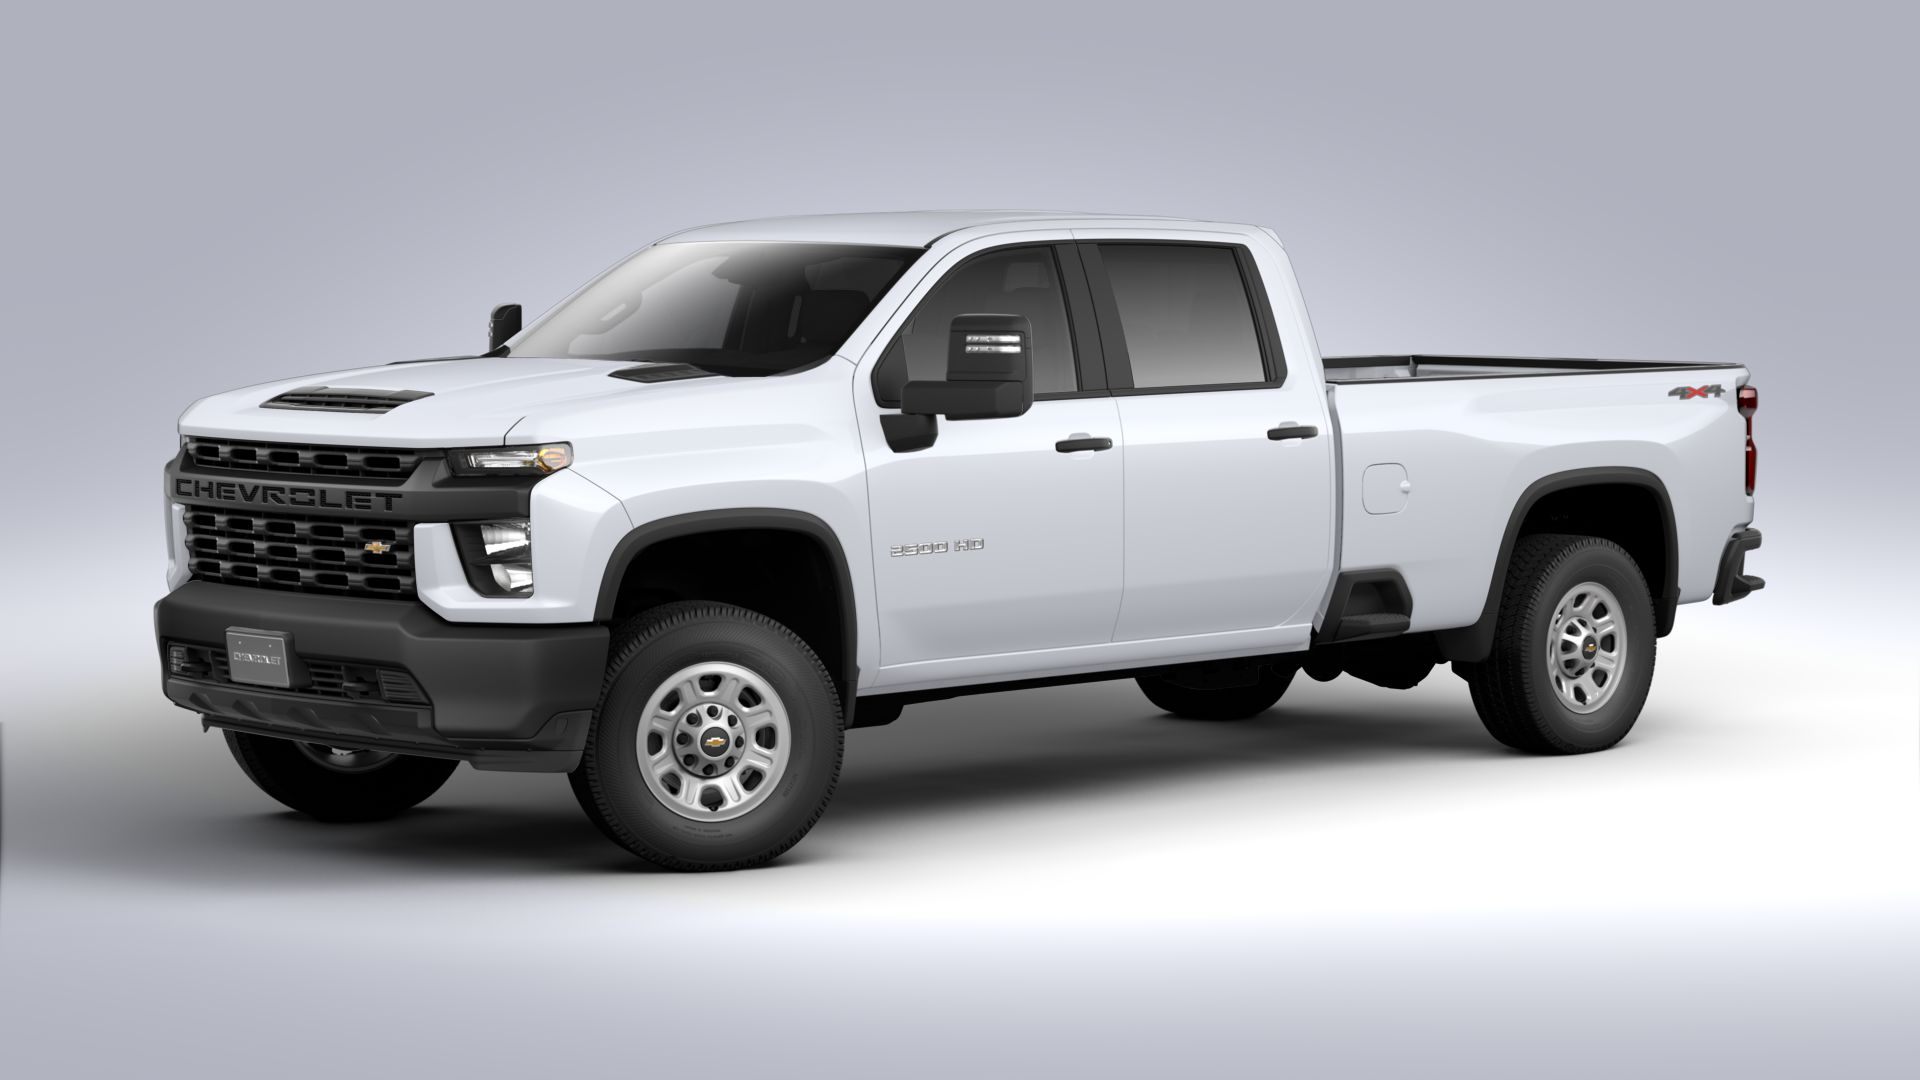 New 2020 Chevrolet Silverado 2500 HD WT